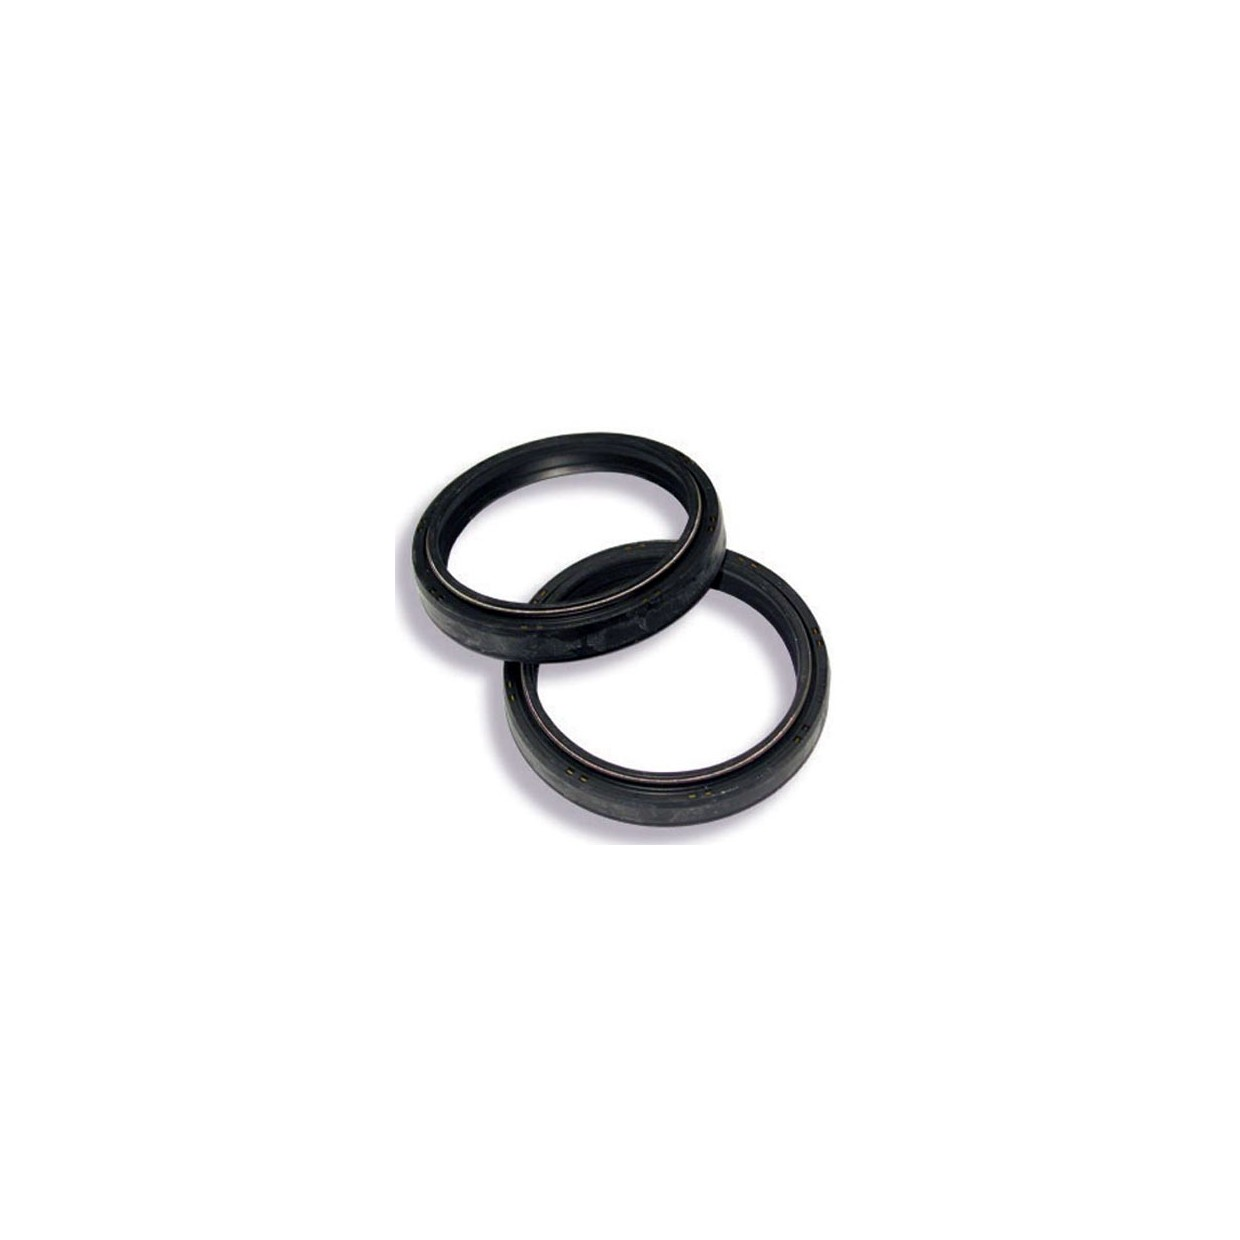 KYB oil seal SET ff 48mm 2-spring, evo 1 (02 PRD